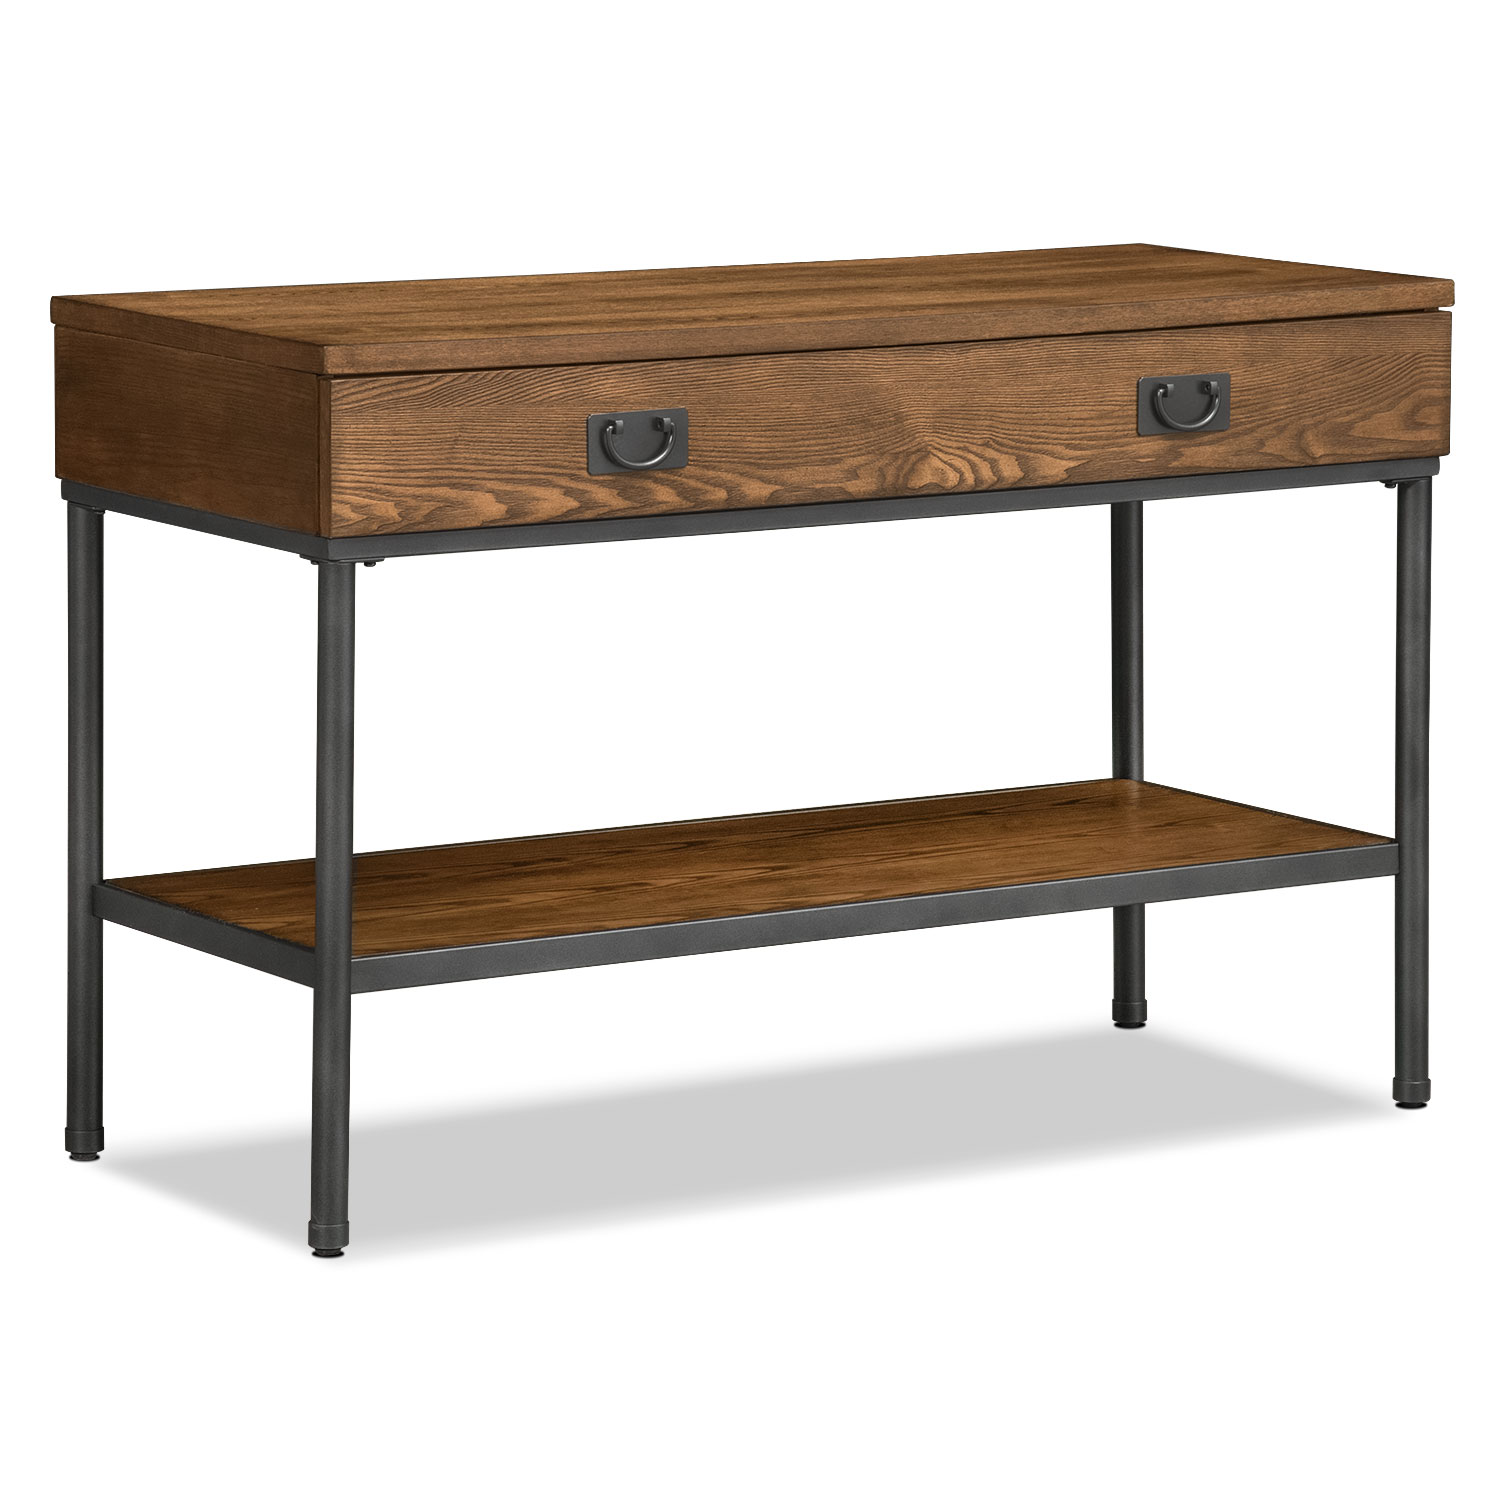 sofa tables shipyard sofa table - nutmeg LELKPOW